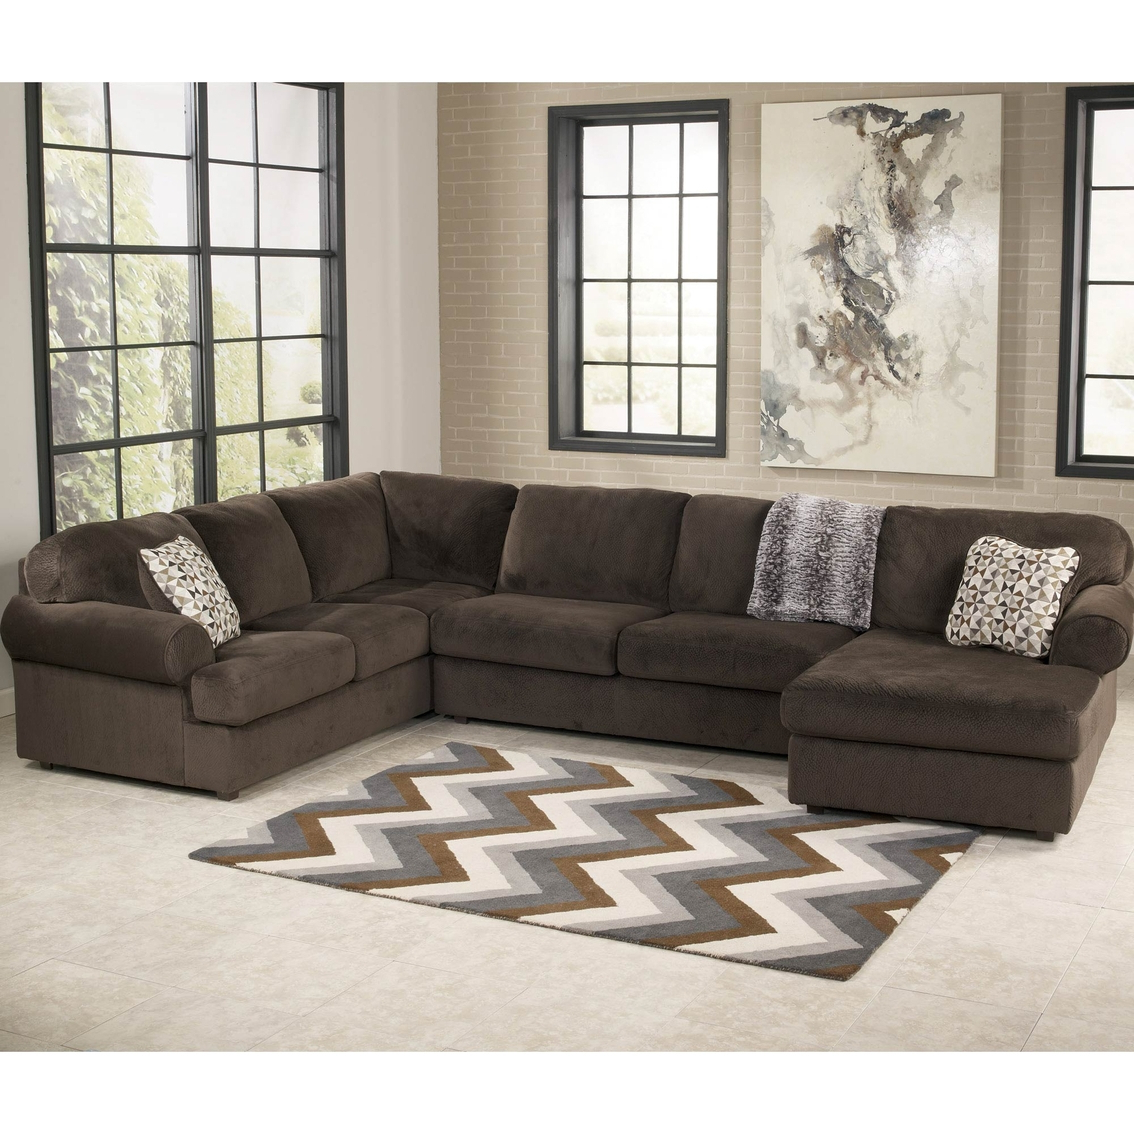 Amazing Signature Designashley Furniture Living Room Sectional Regarding Most Up To Date Benton 4 Piece Sectionals (View 14 of 20)